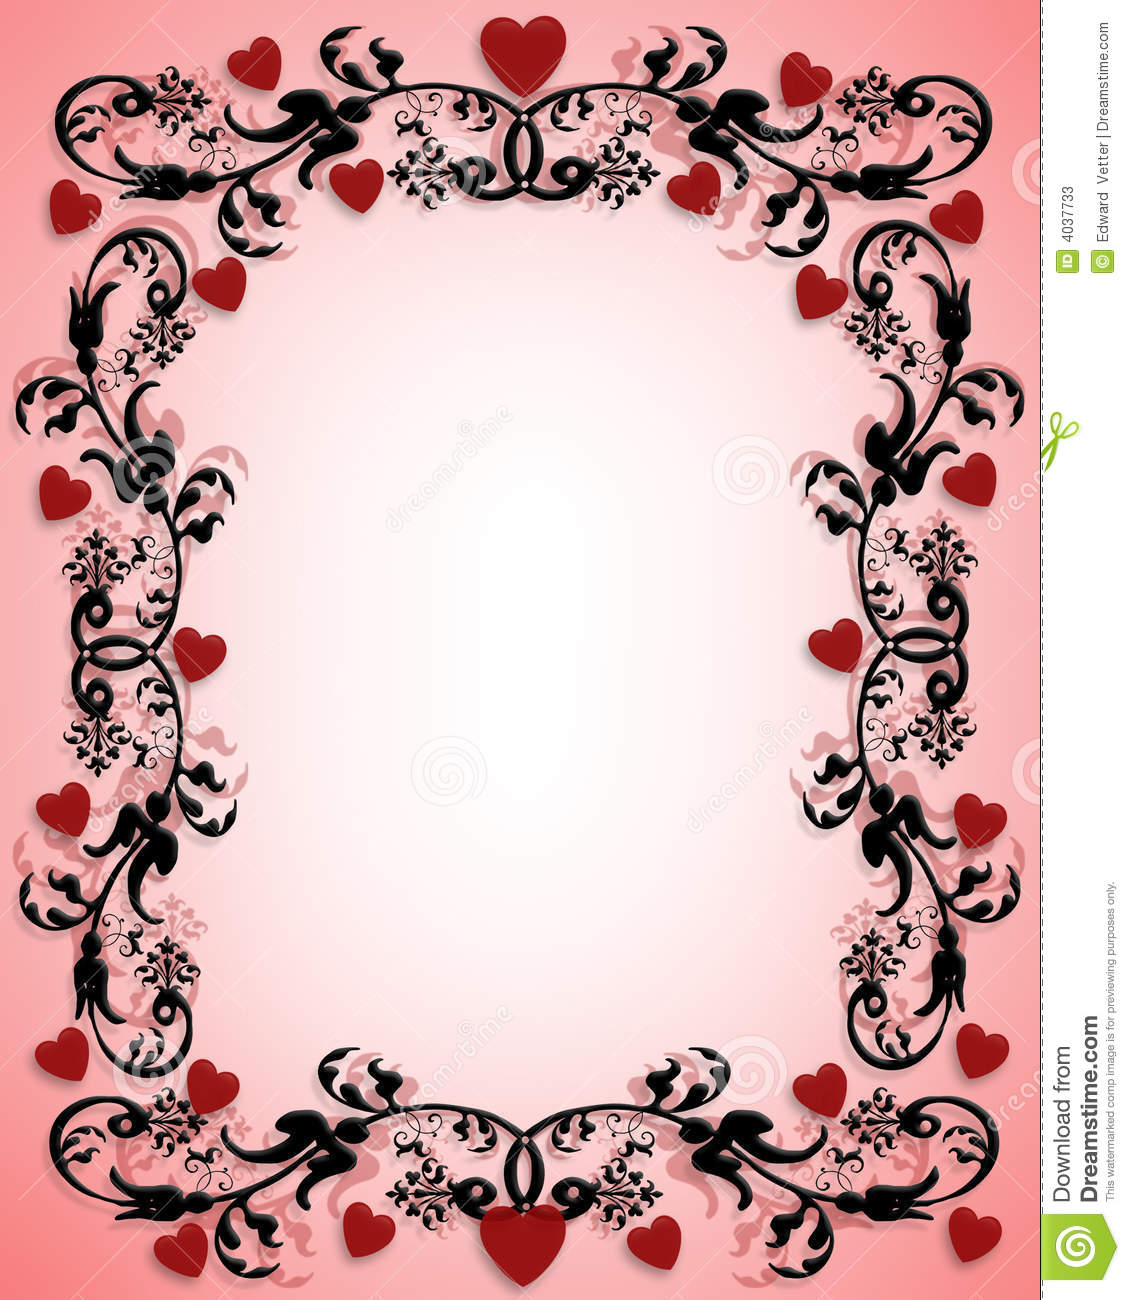 Valentines Day Border Ornamental Hearts Stock Photos - Image: 4037733